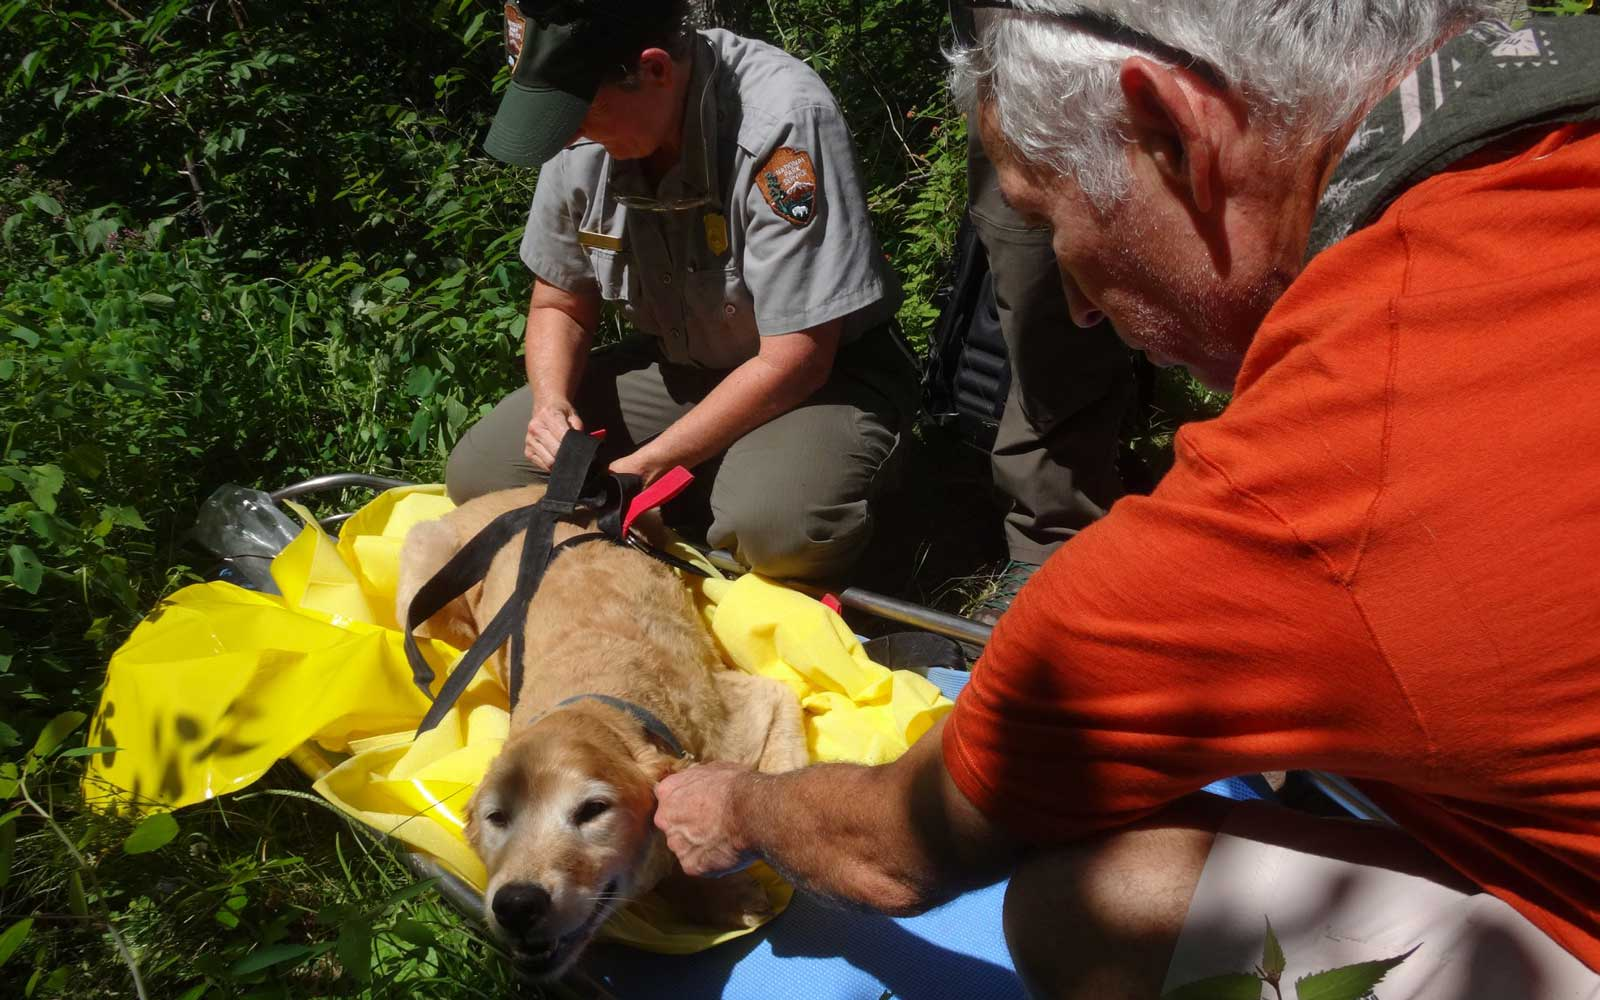 Missing dog found and rescued by hikers in Shenandoah National Park